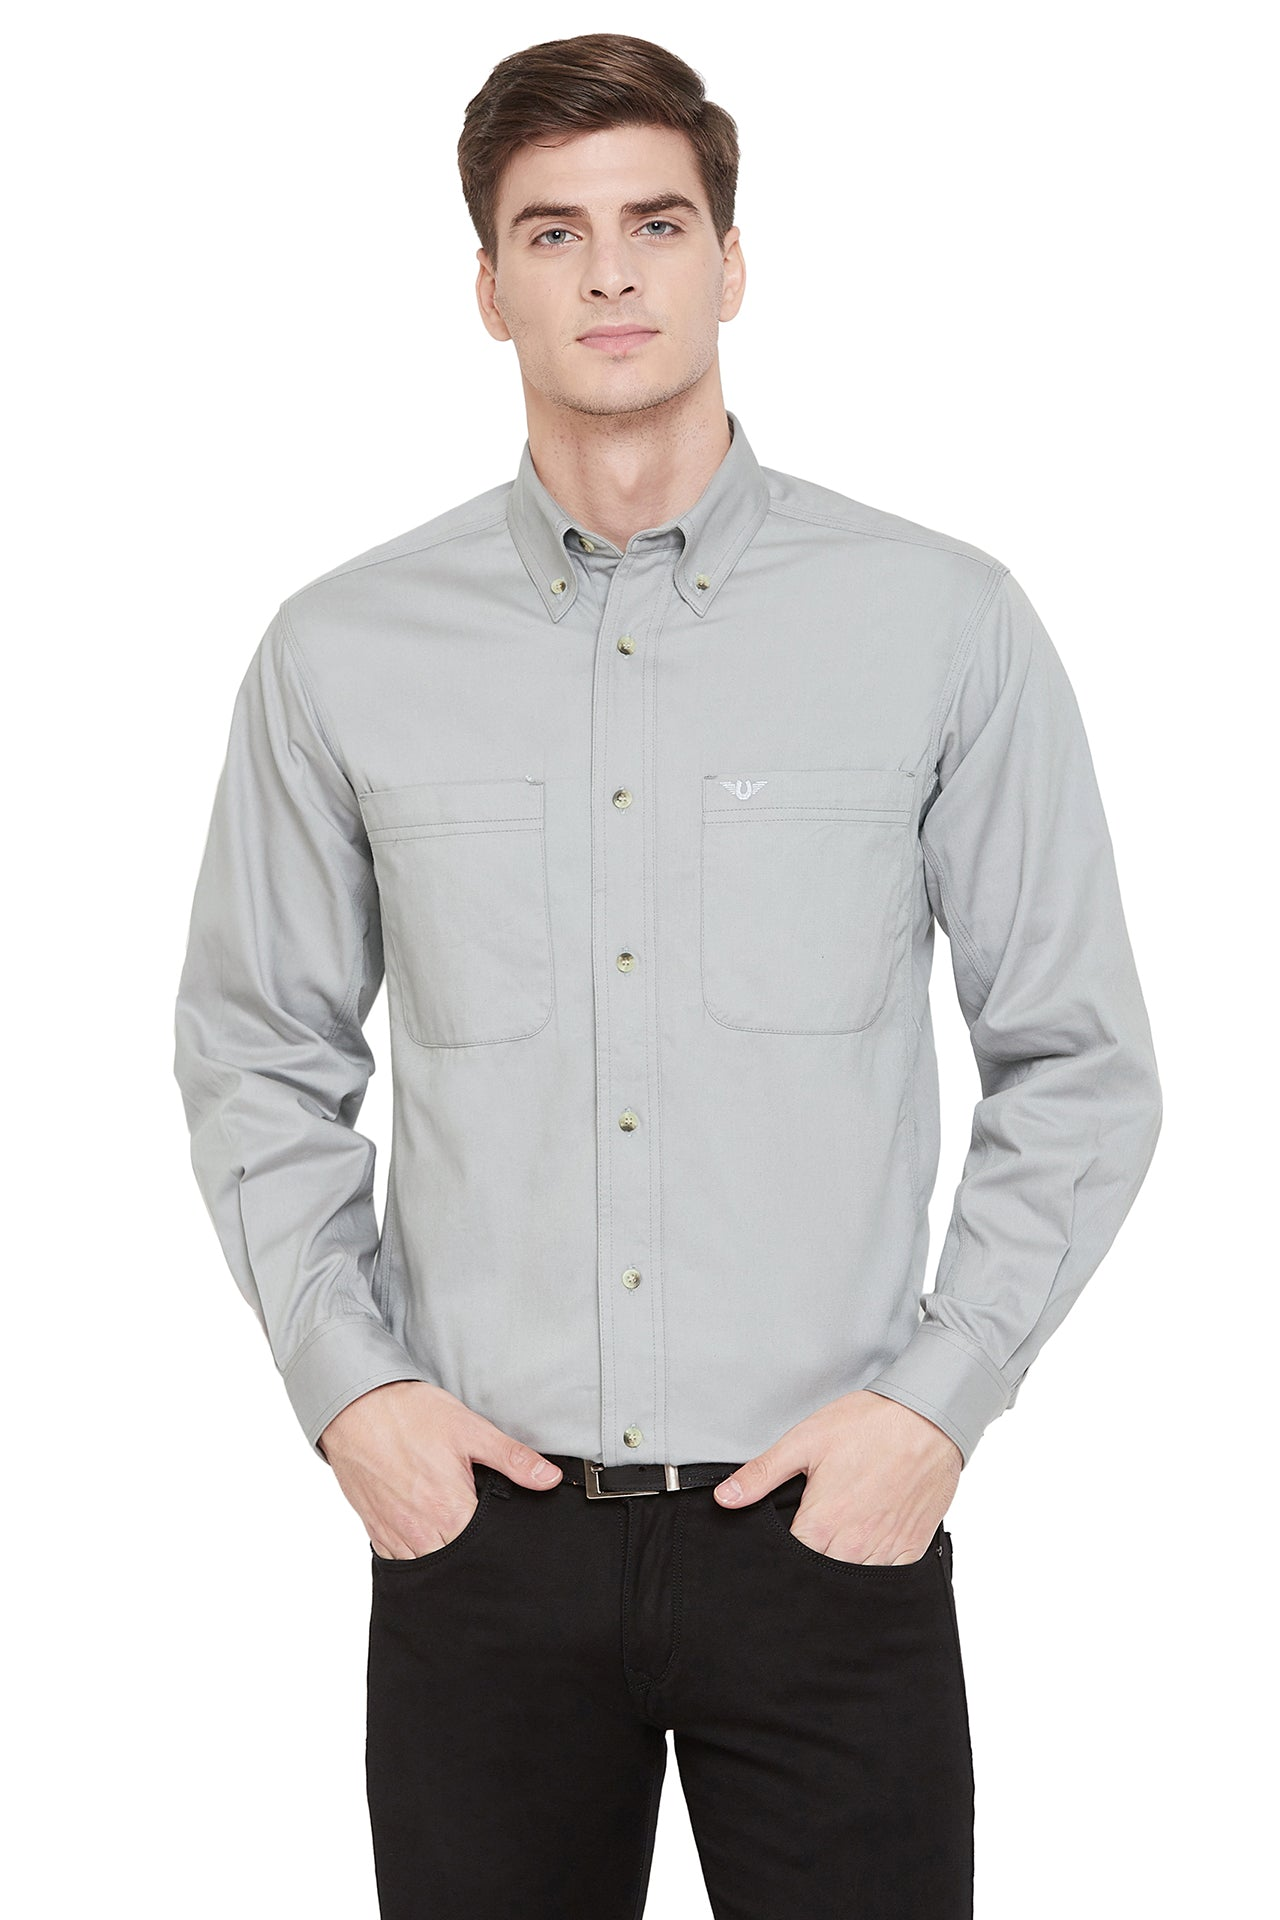 TuffRider Men's Voltage Work Shirt_1